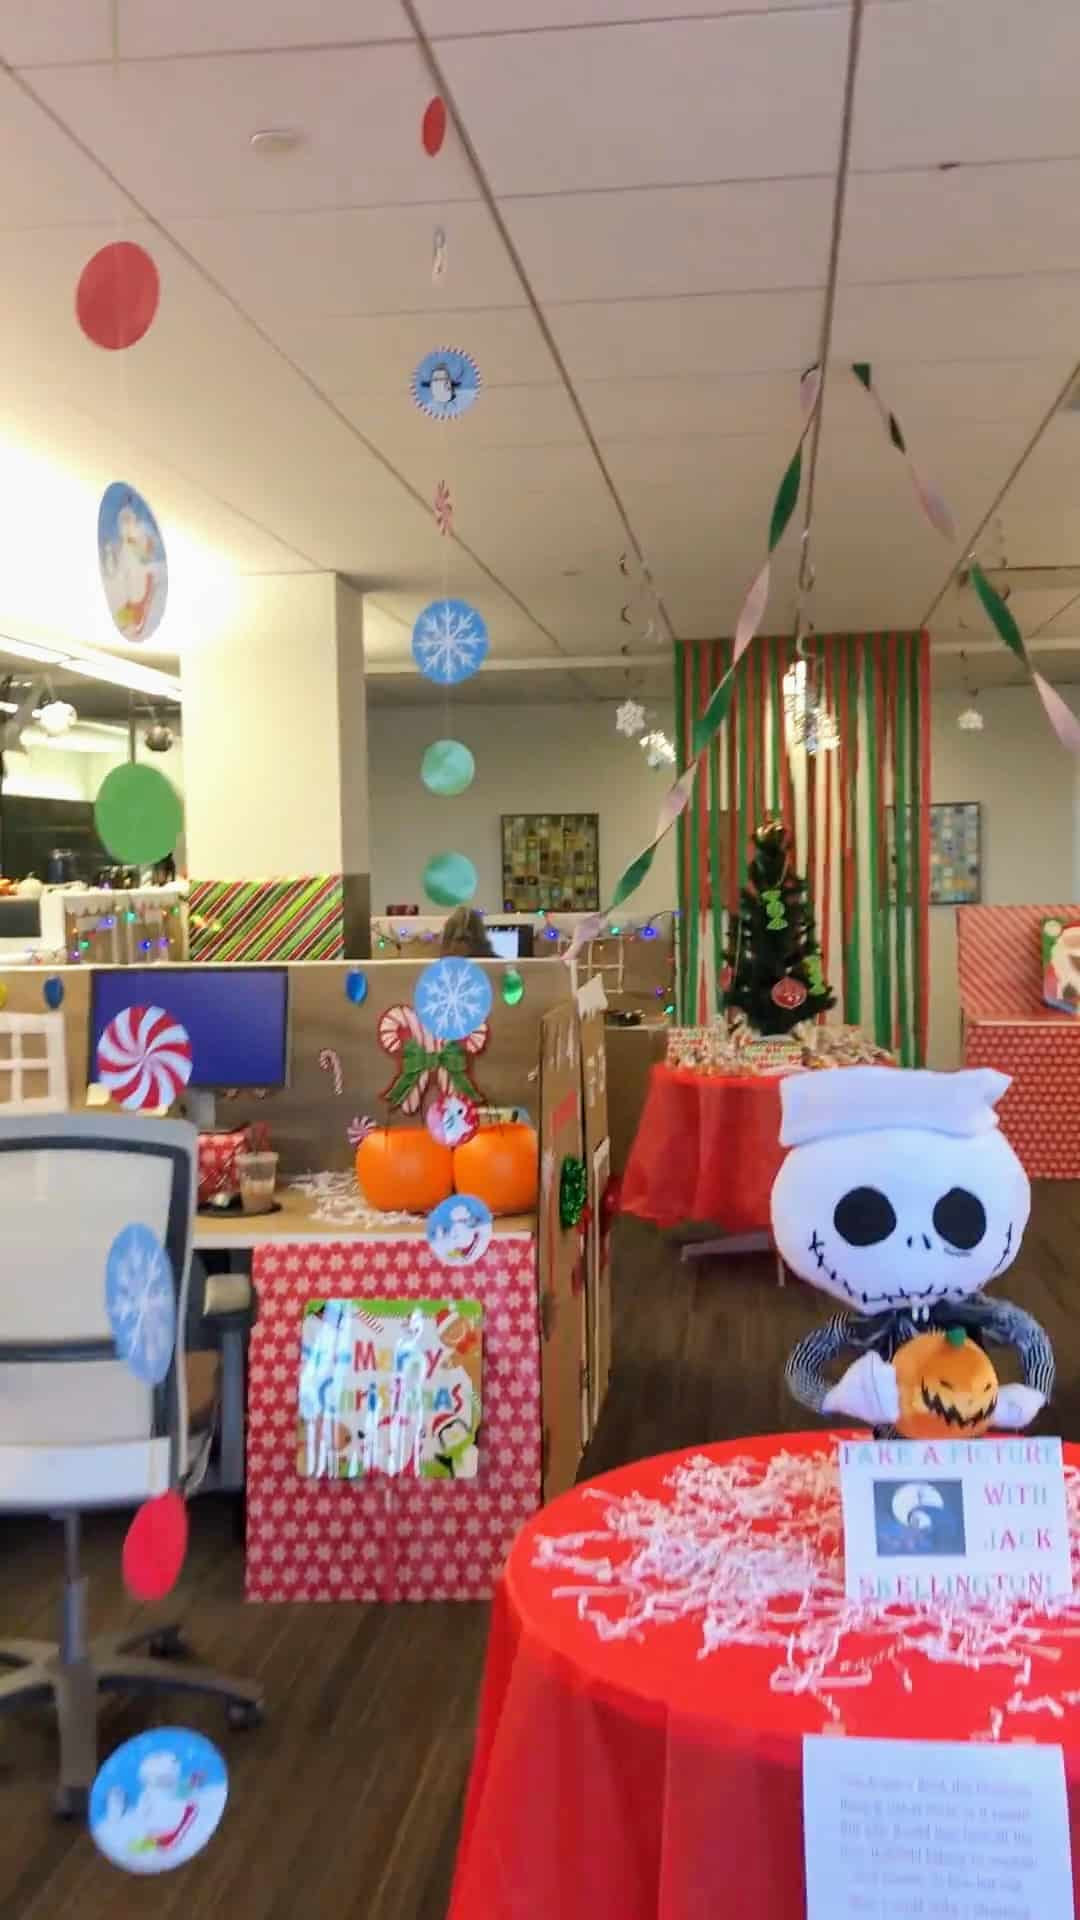 An office decorated as Christmas Town from A Nightmare Before Christmas